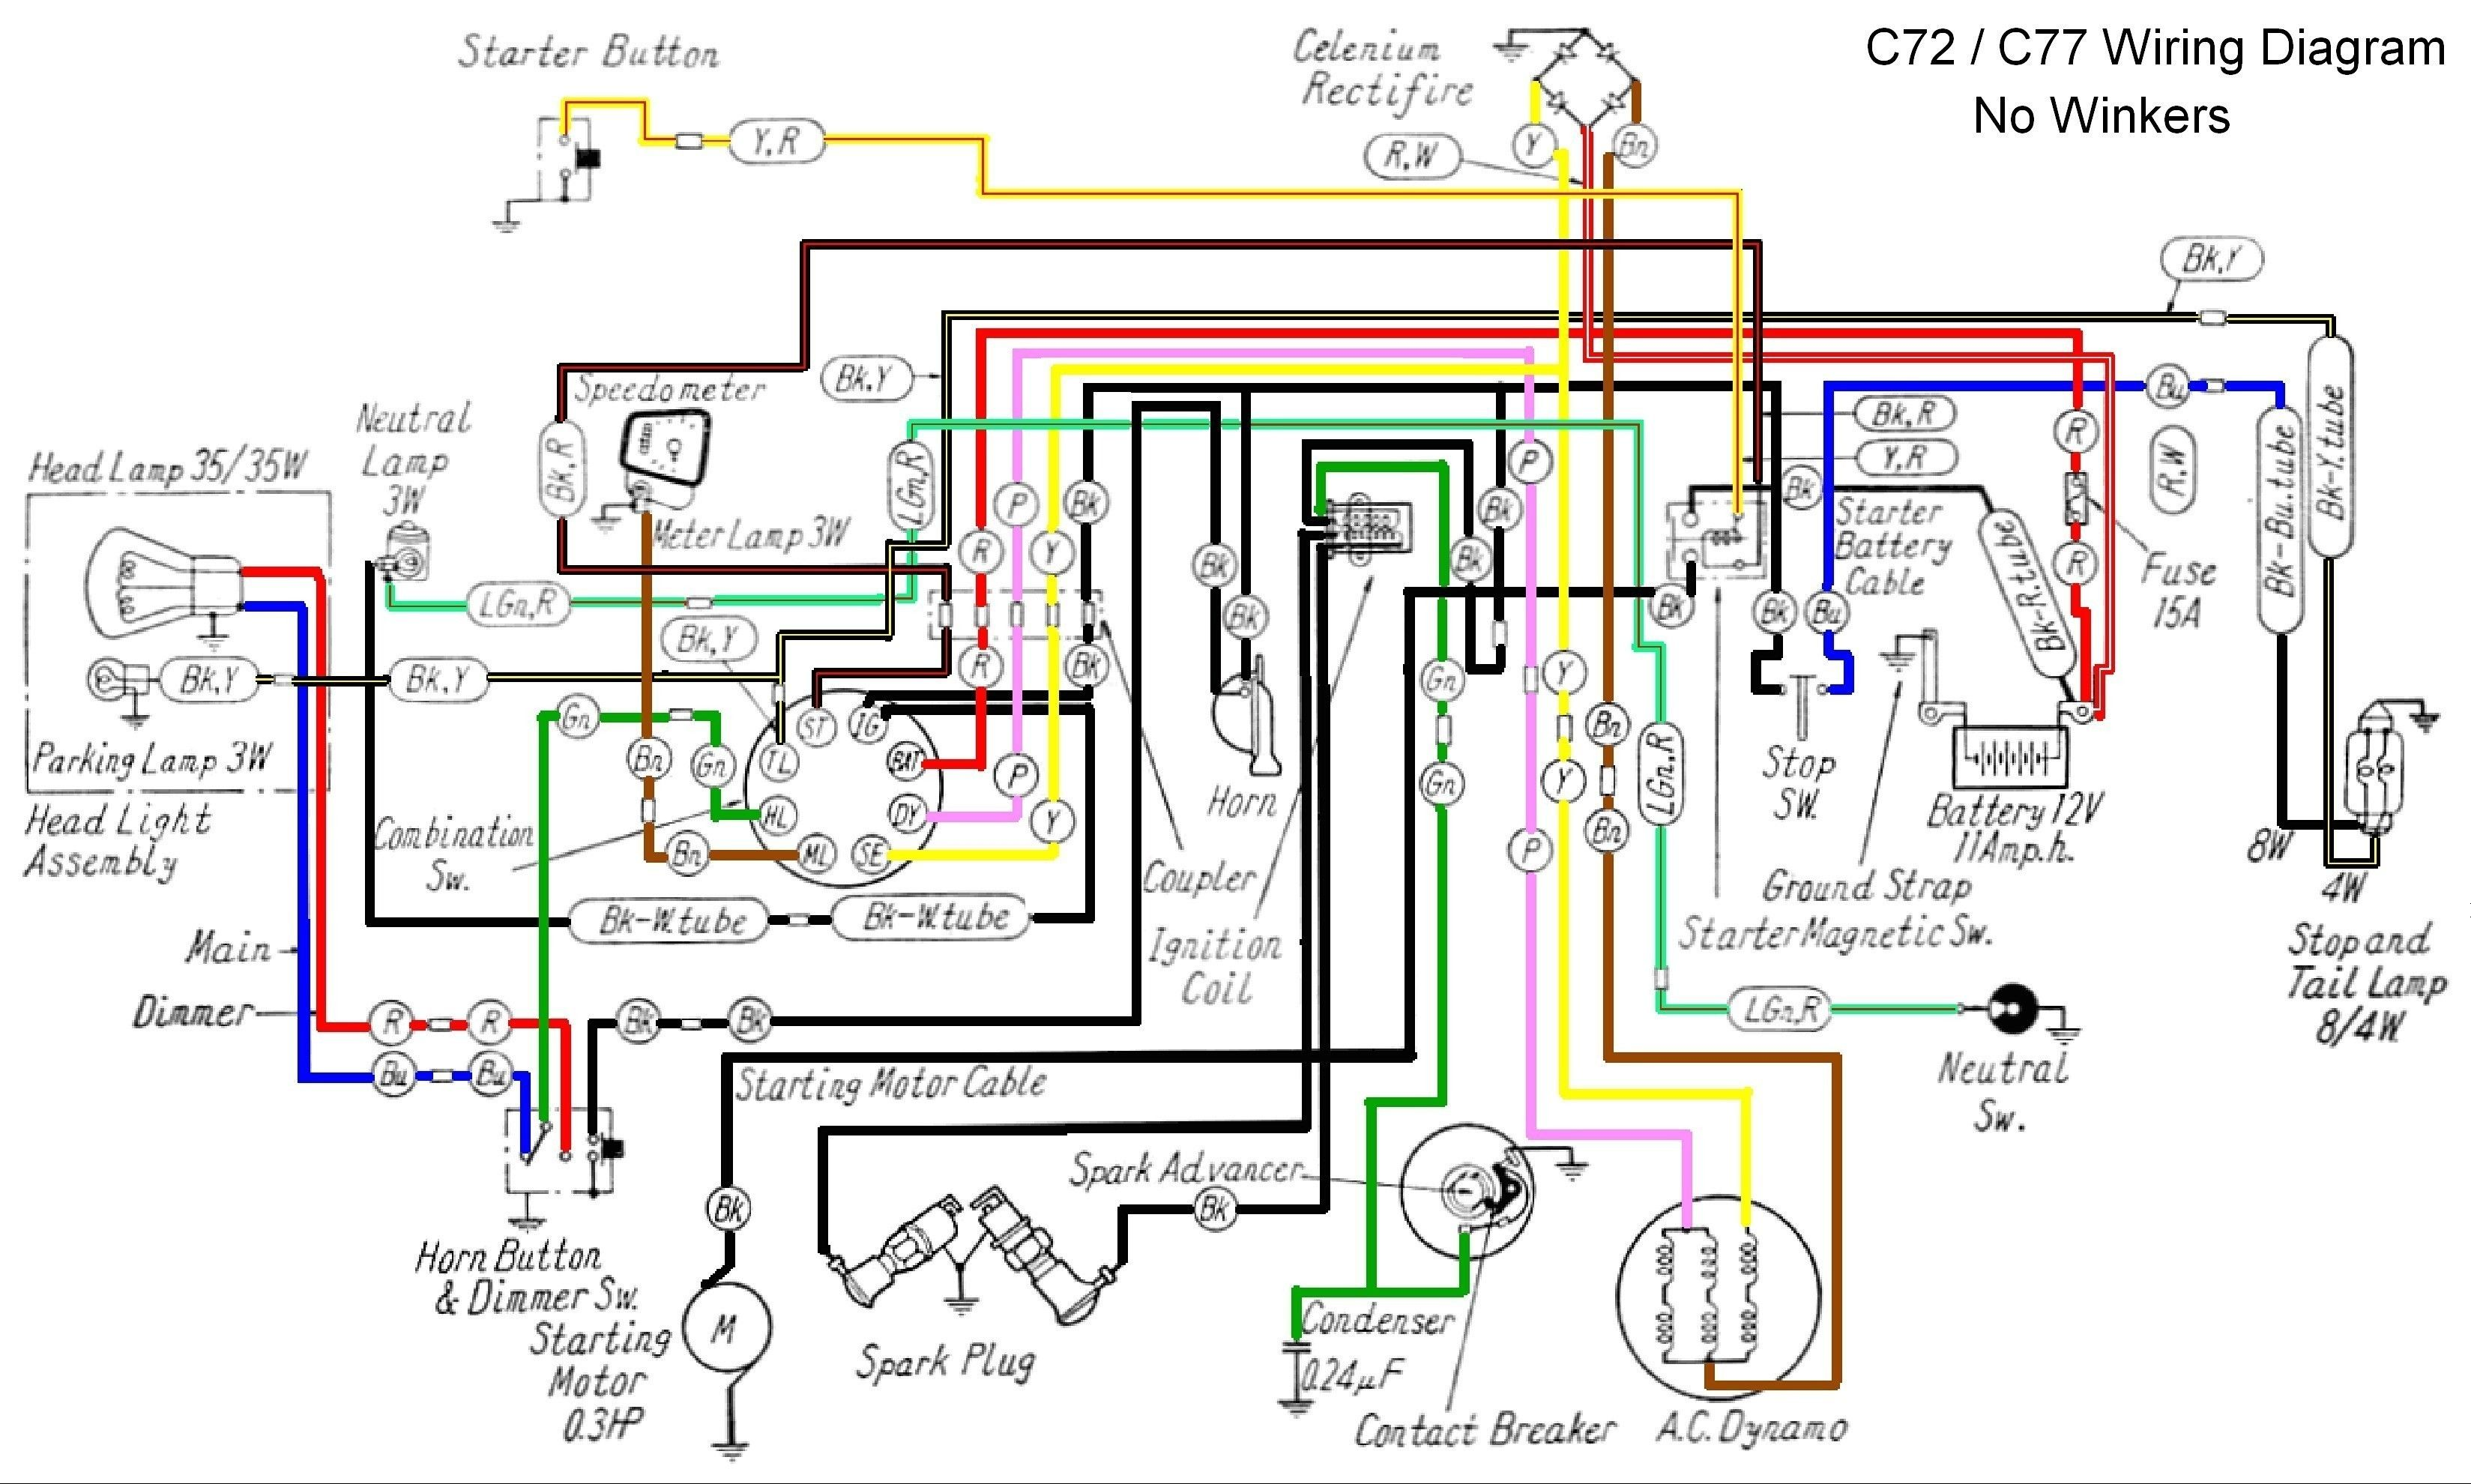 Element Audio System Integration Wiring Diagram Honda Element Honda Element Accessories Honda Element Camping